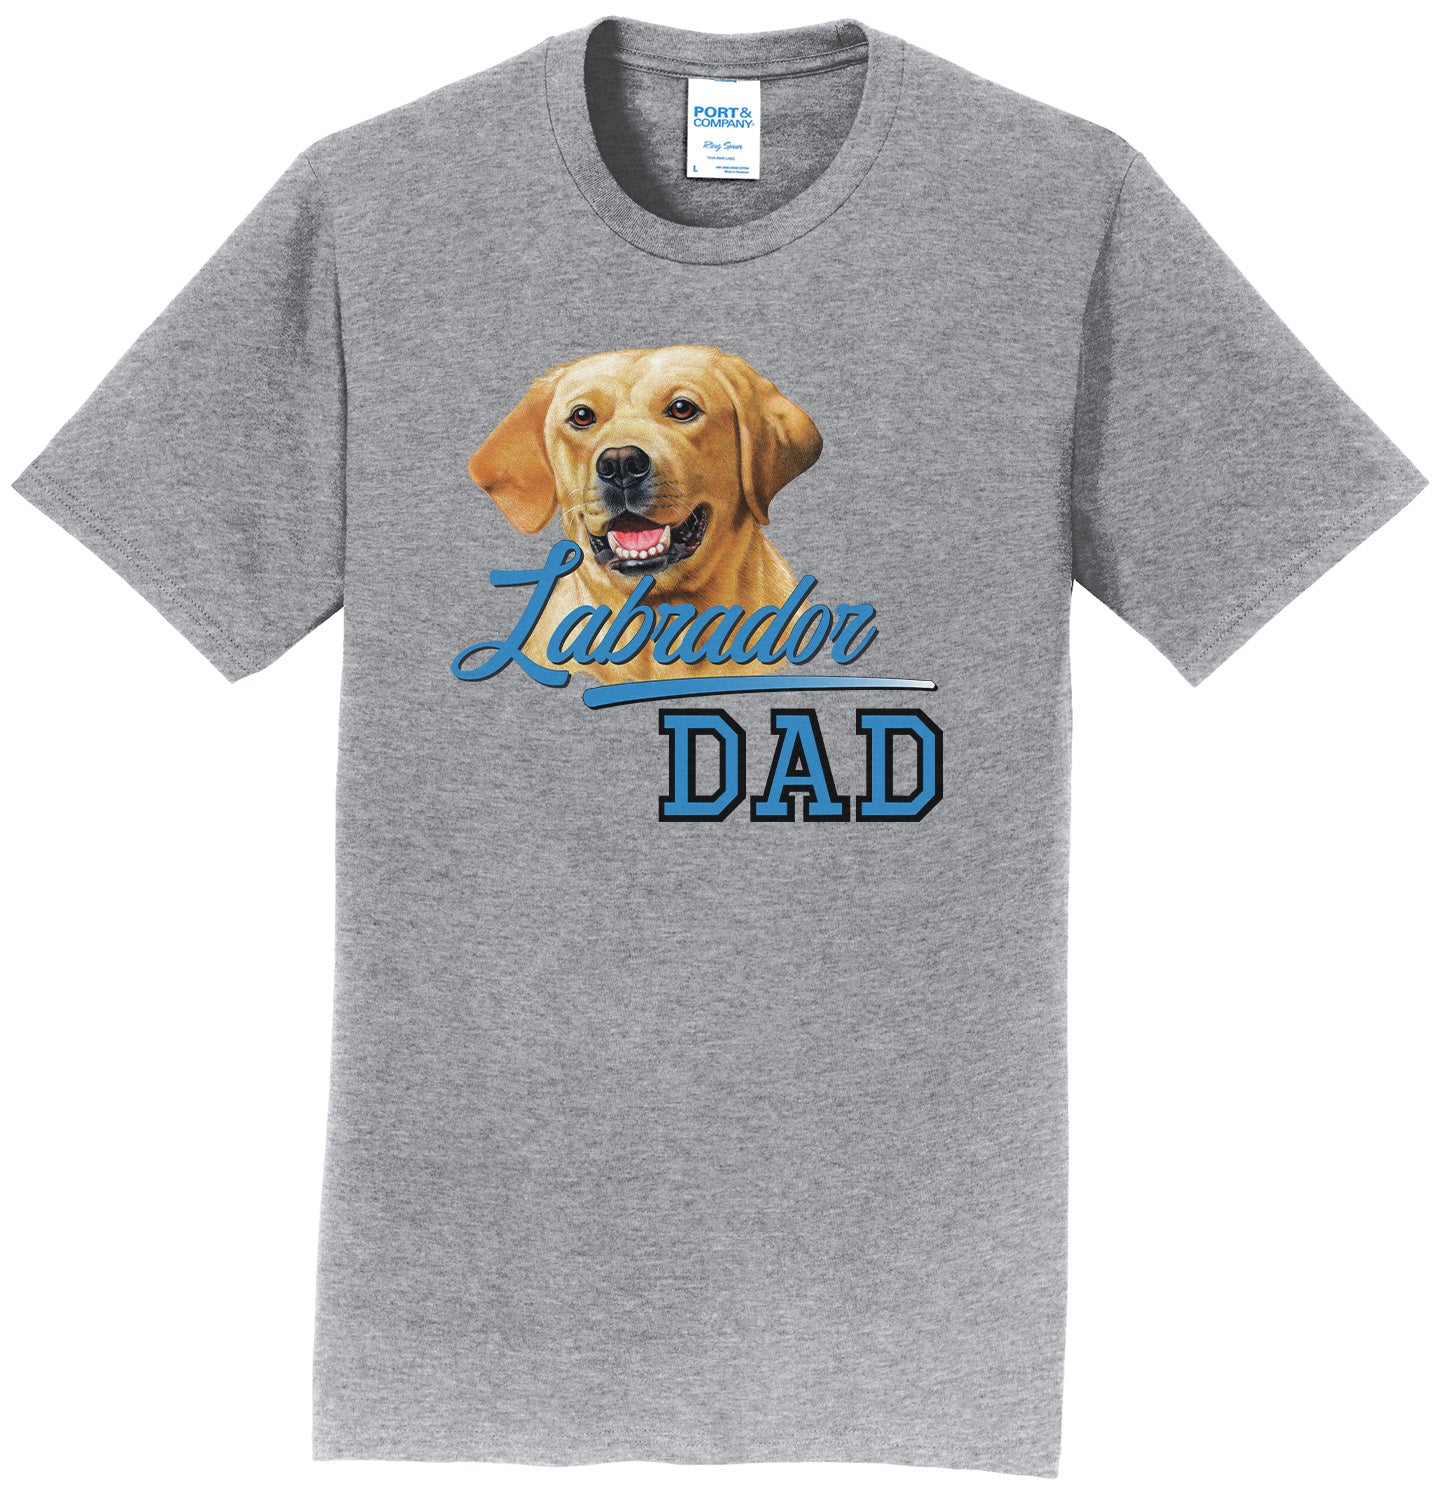 Labrador Dad - Adult Unisex T-Shirt